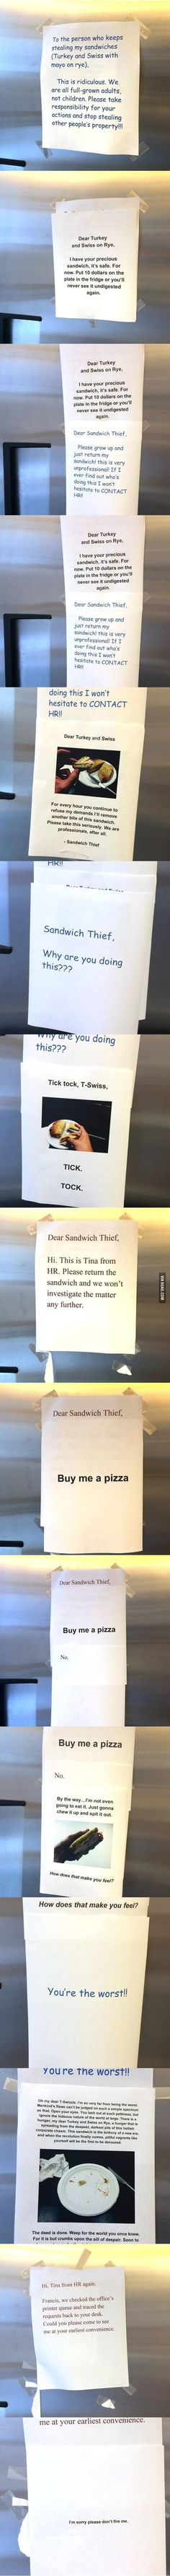 Epic!!!!!.....Sandwich Thief Stories